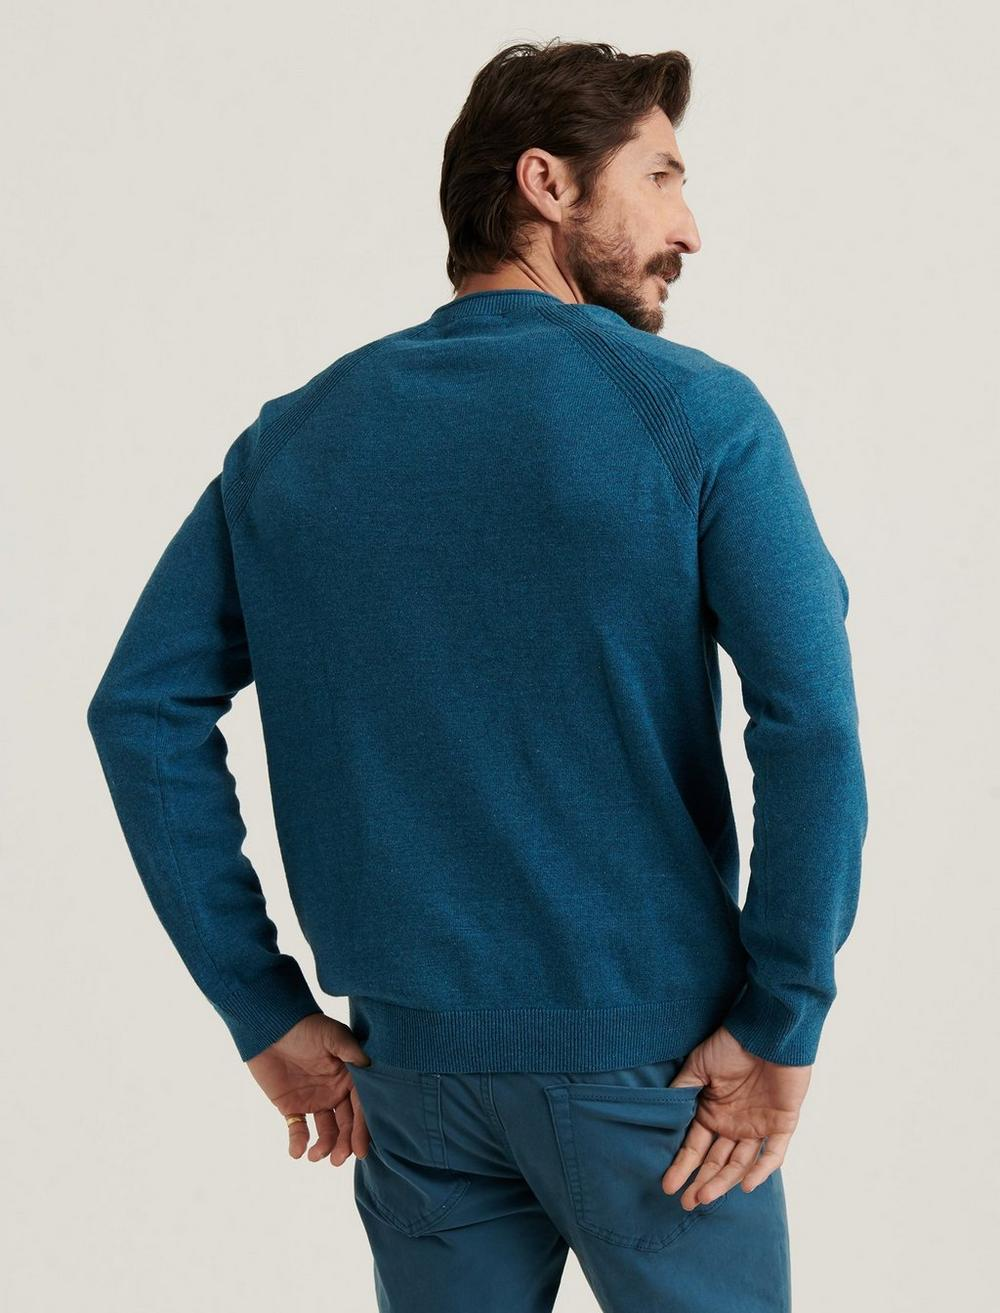 WELTER WEIGHT V-NECK SWEATER, image 5